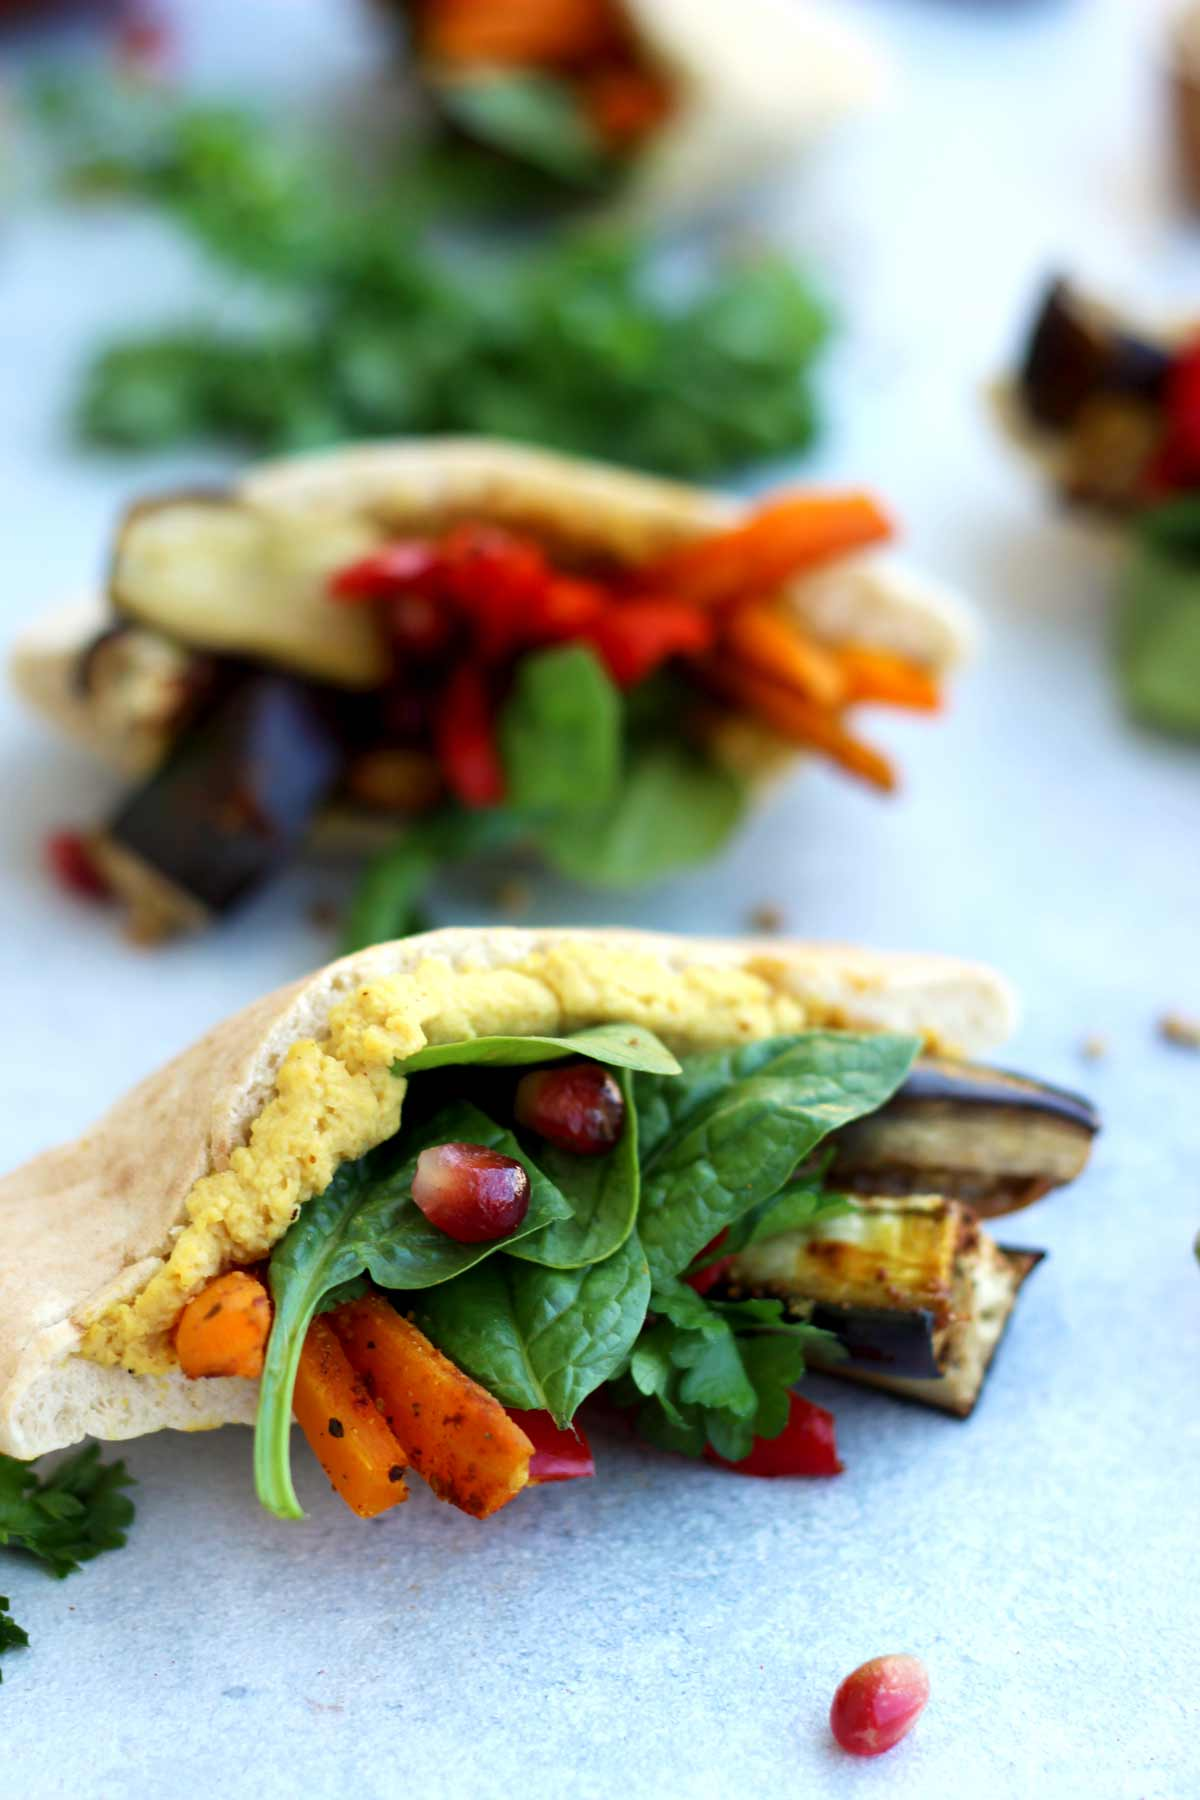 Pita Pockets with Roasted Veggies and Hummus Beautiful Closeup on One of the Pitas on the Table